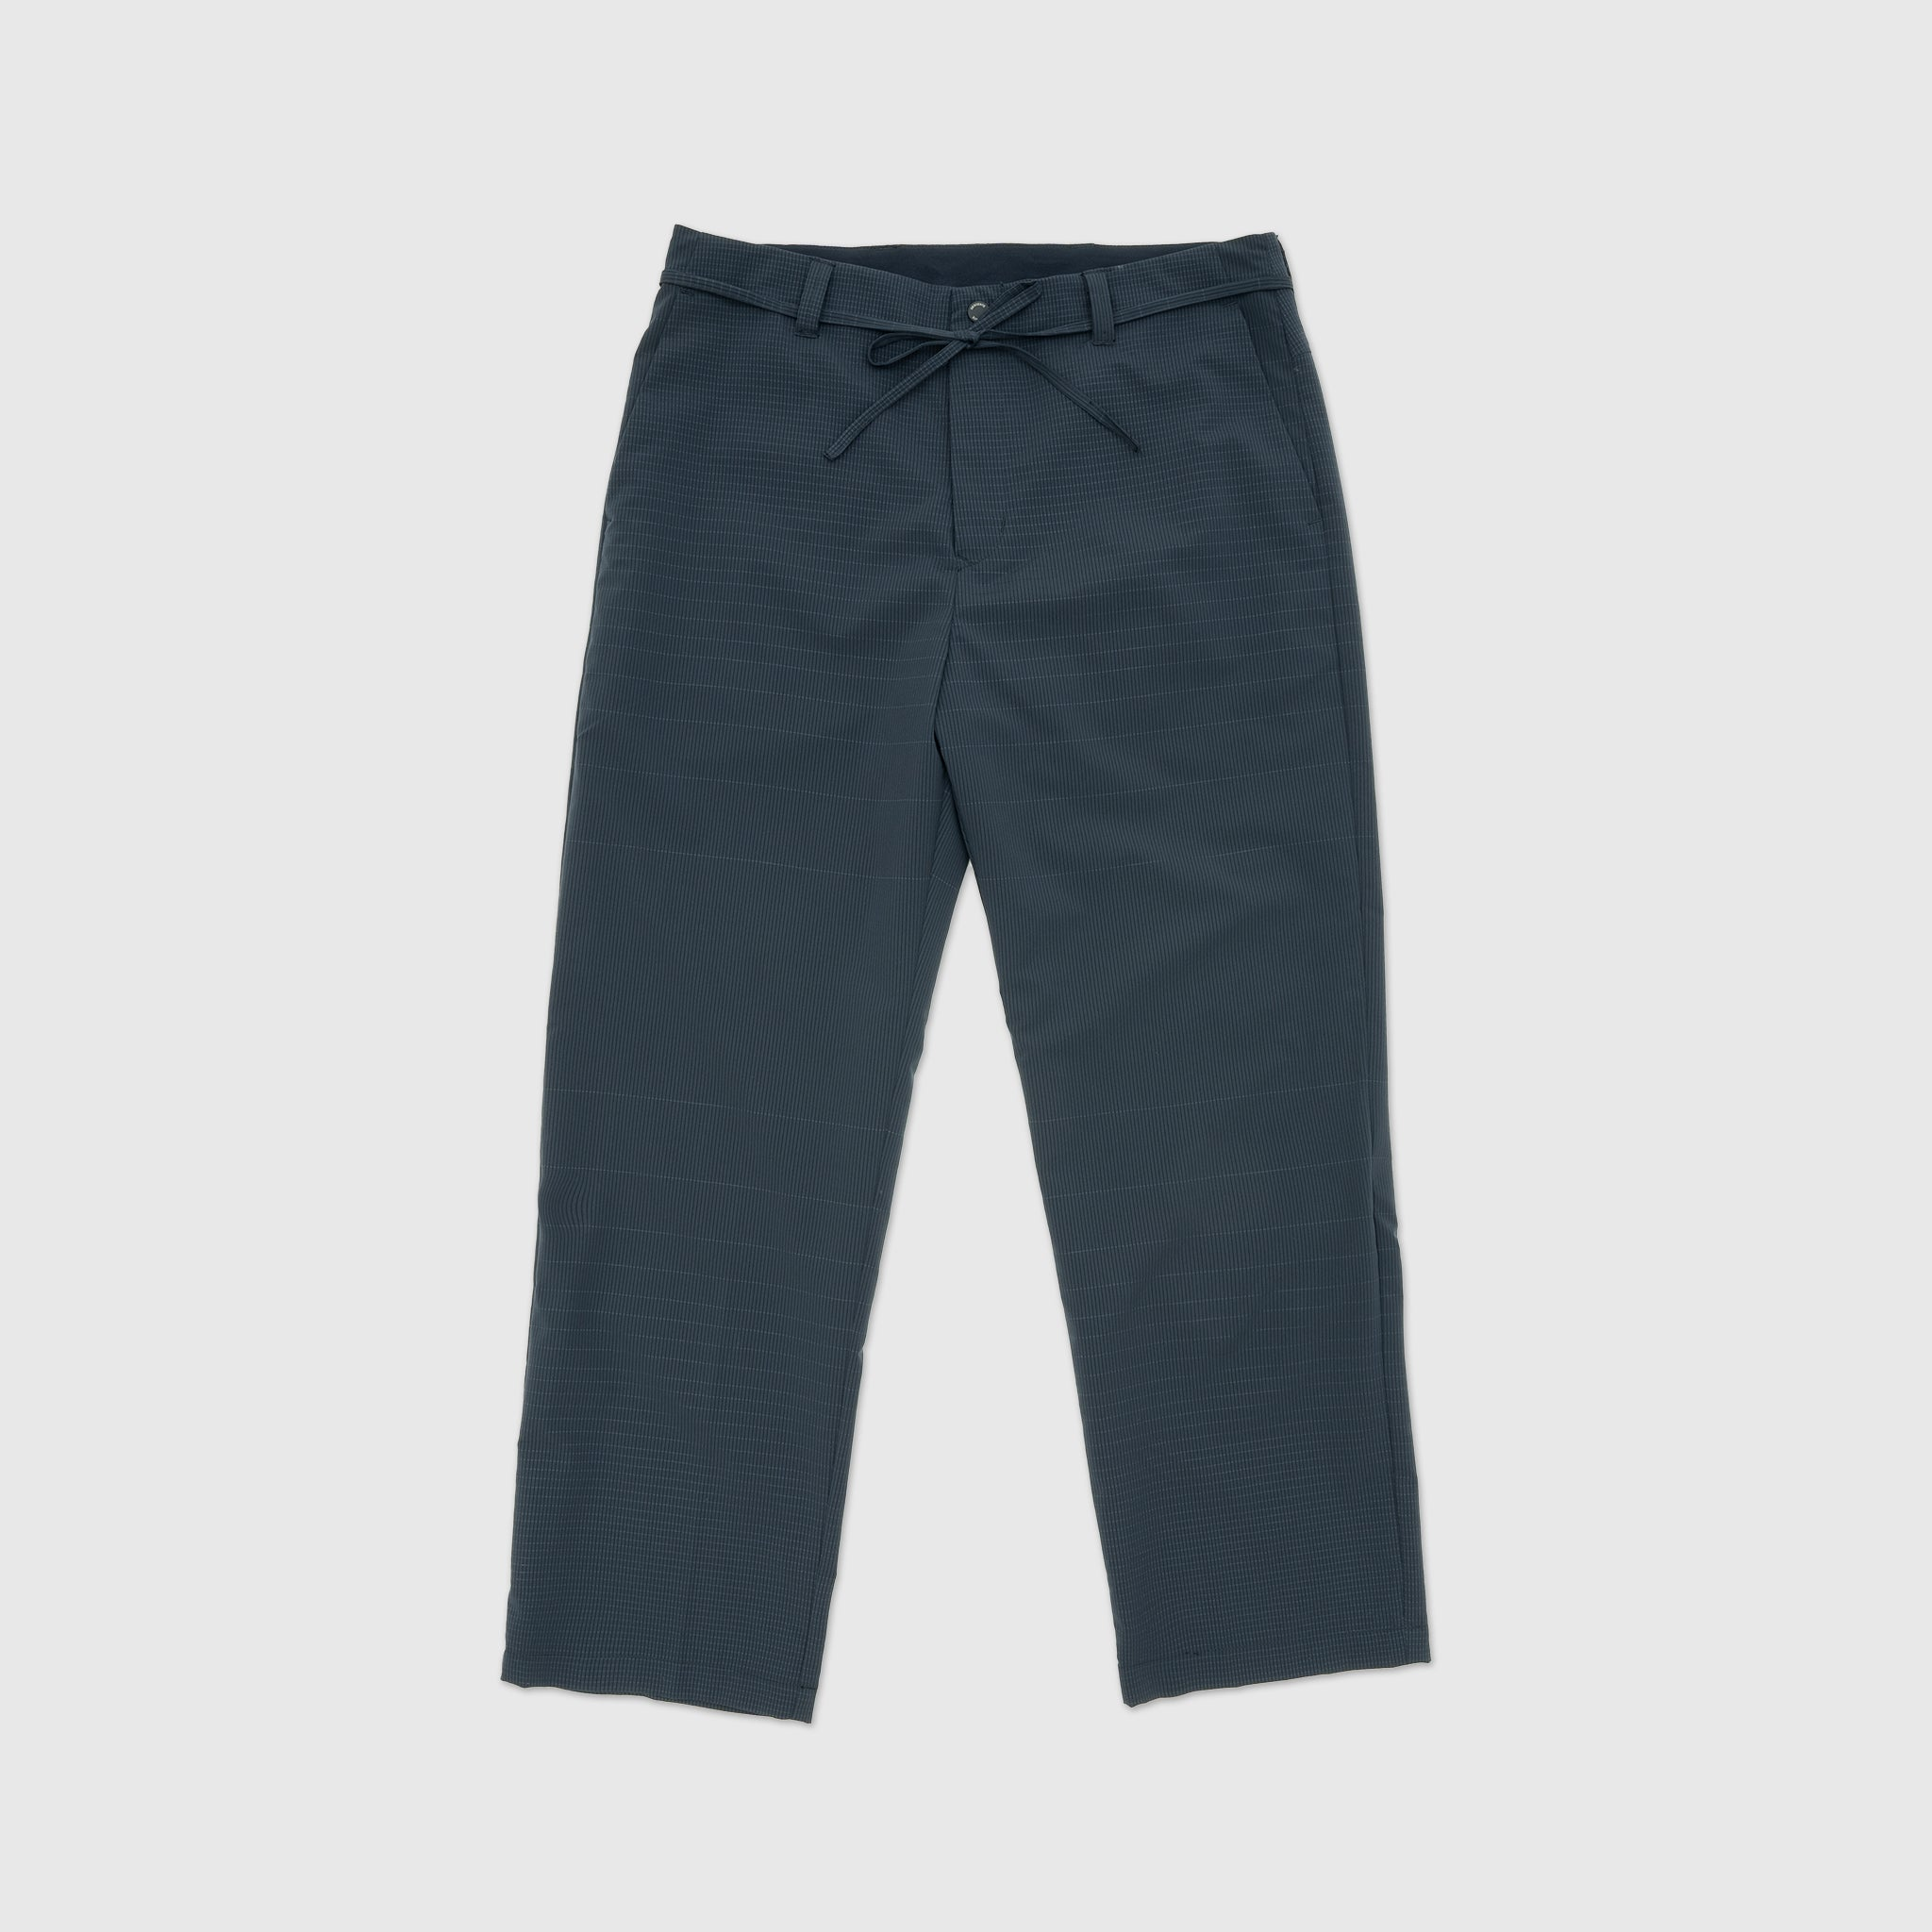 DESCENTE SCHEMATECH AIR PANTS